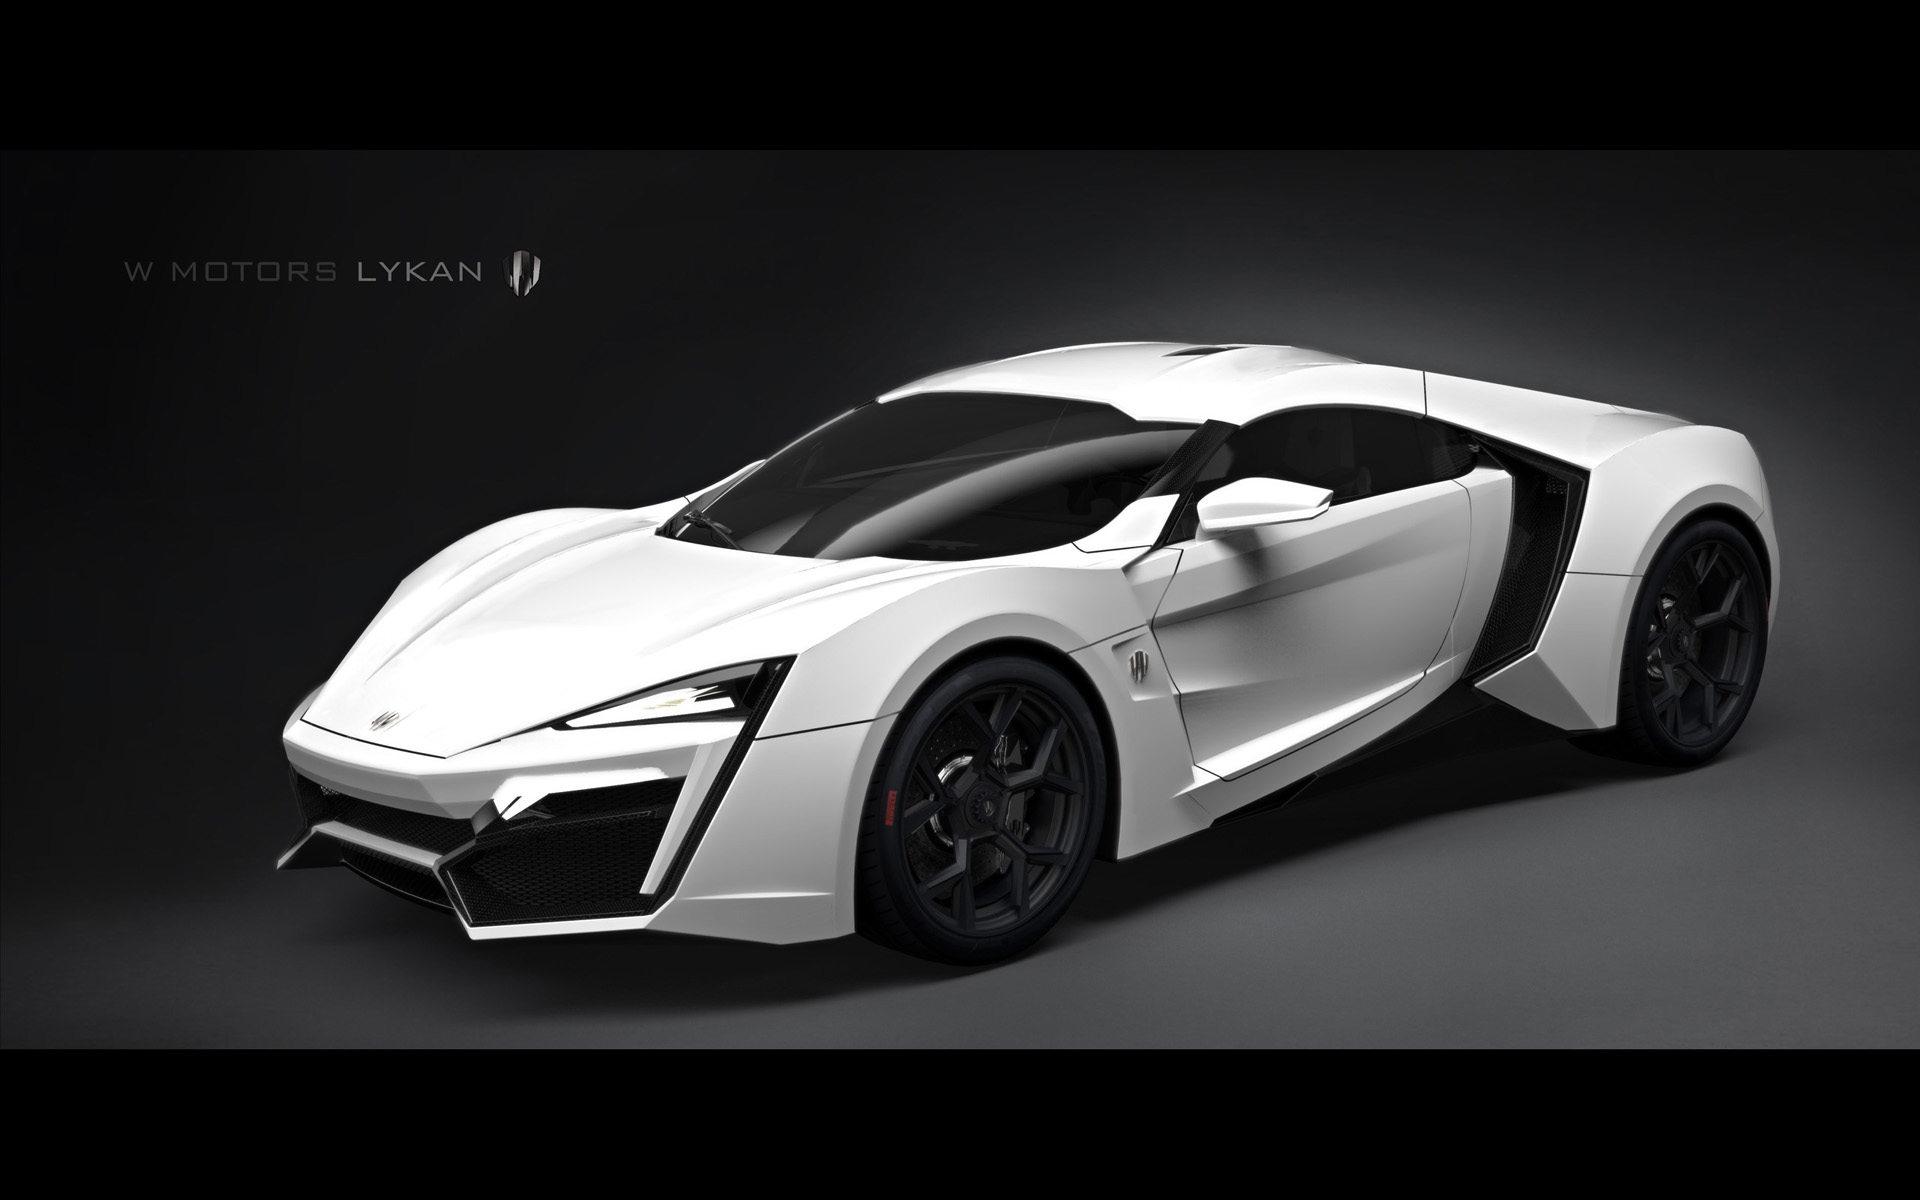 Lykan Hypersport: Engine, Interior, Exterior And Price